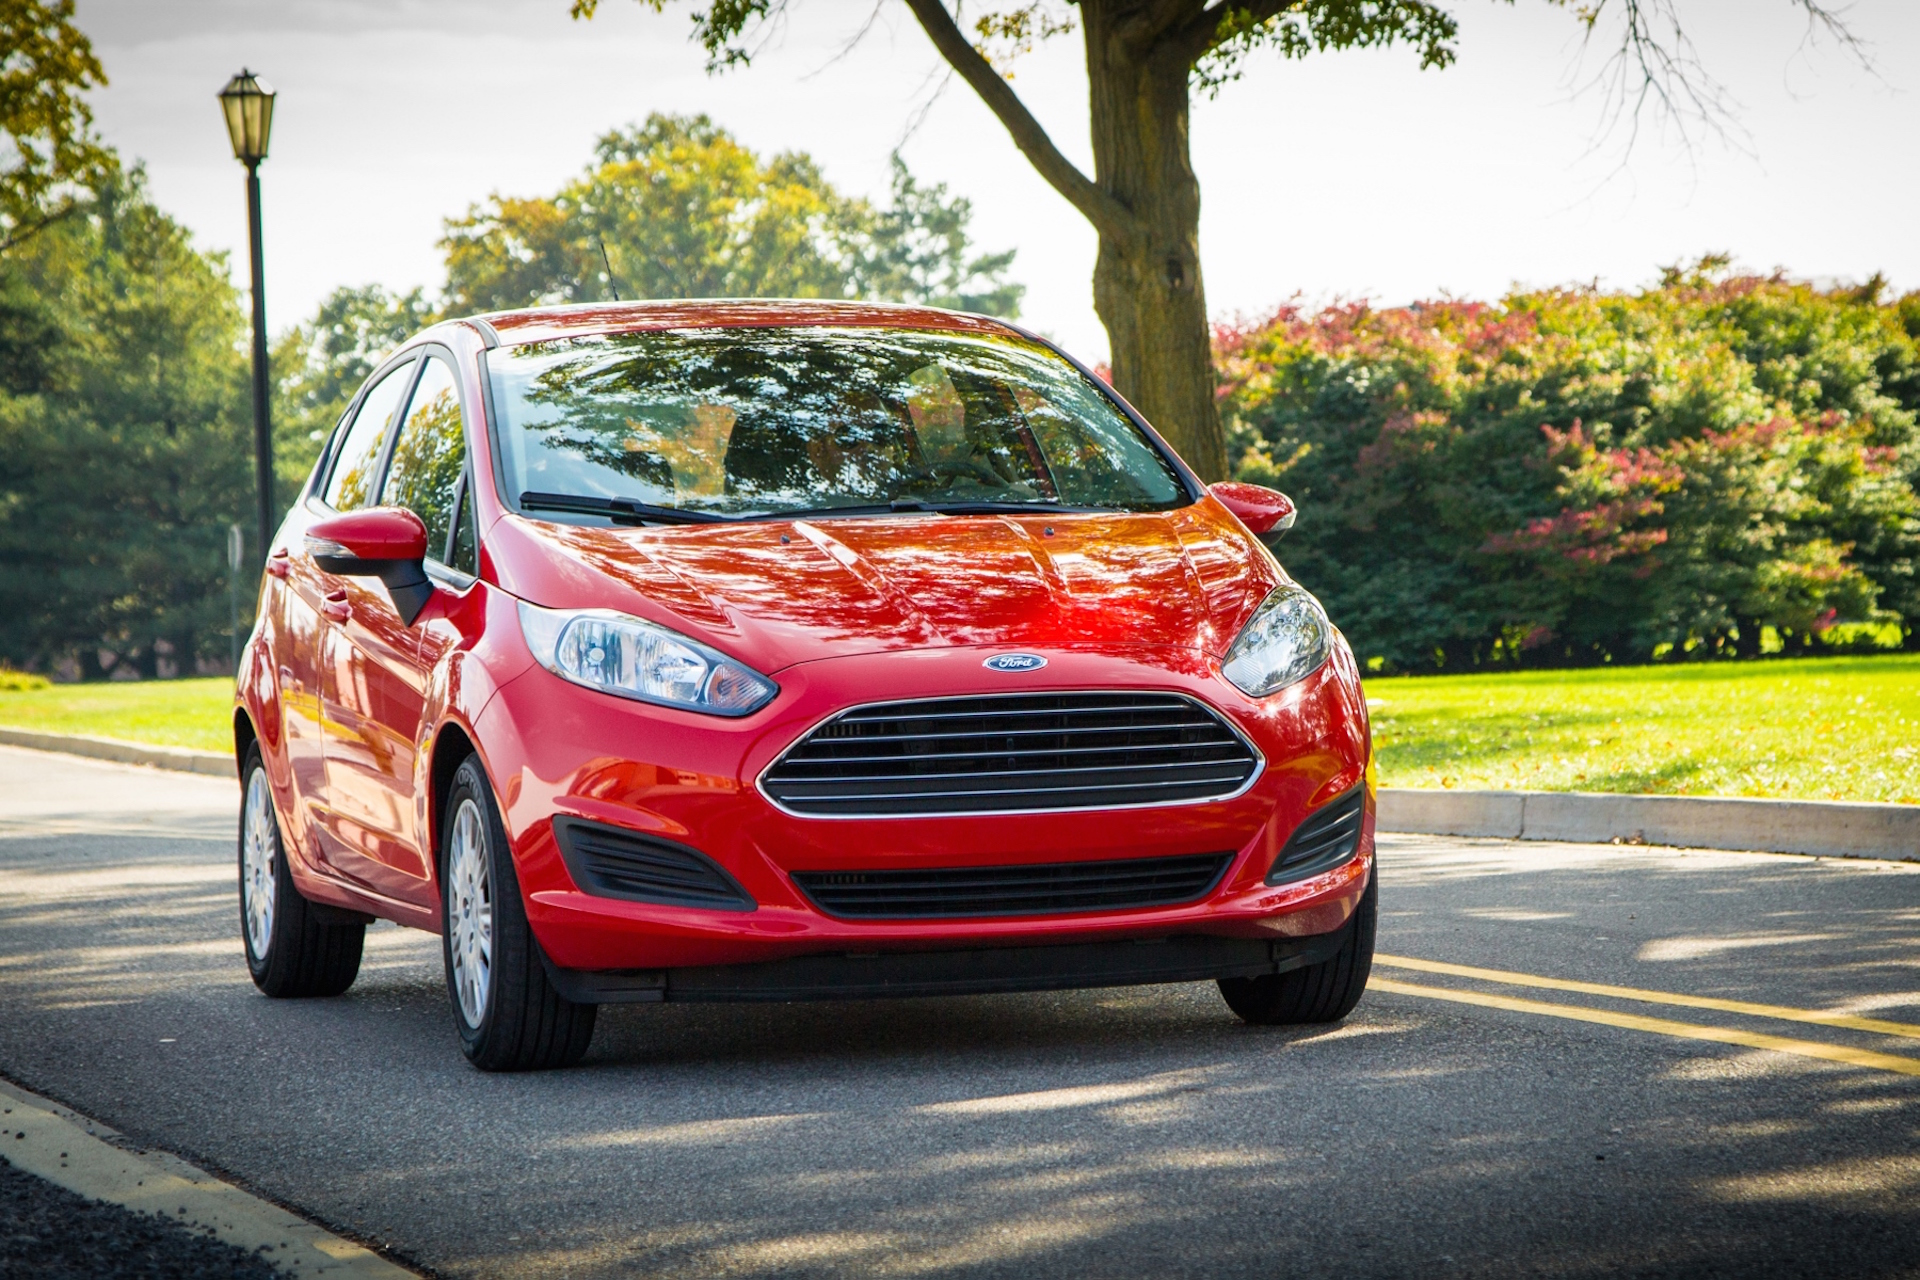 Ford wants customers to rent their cars to other people